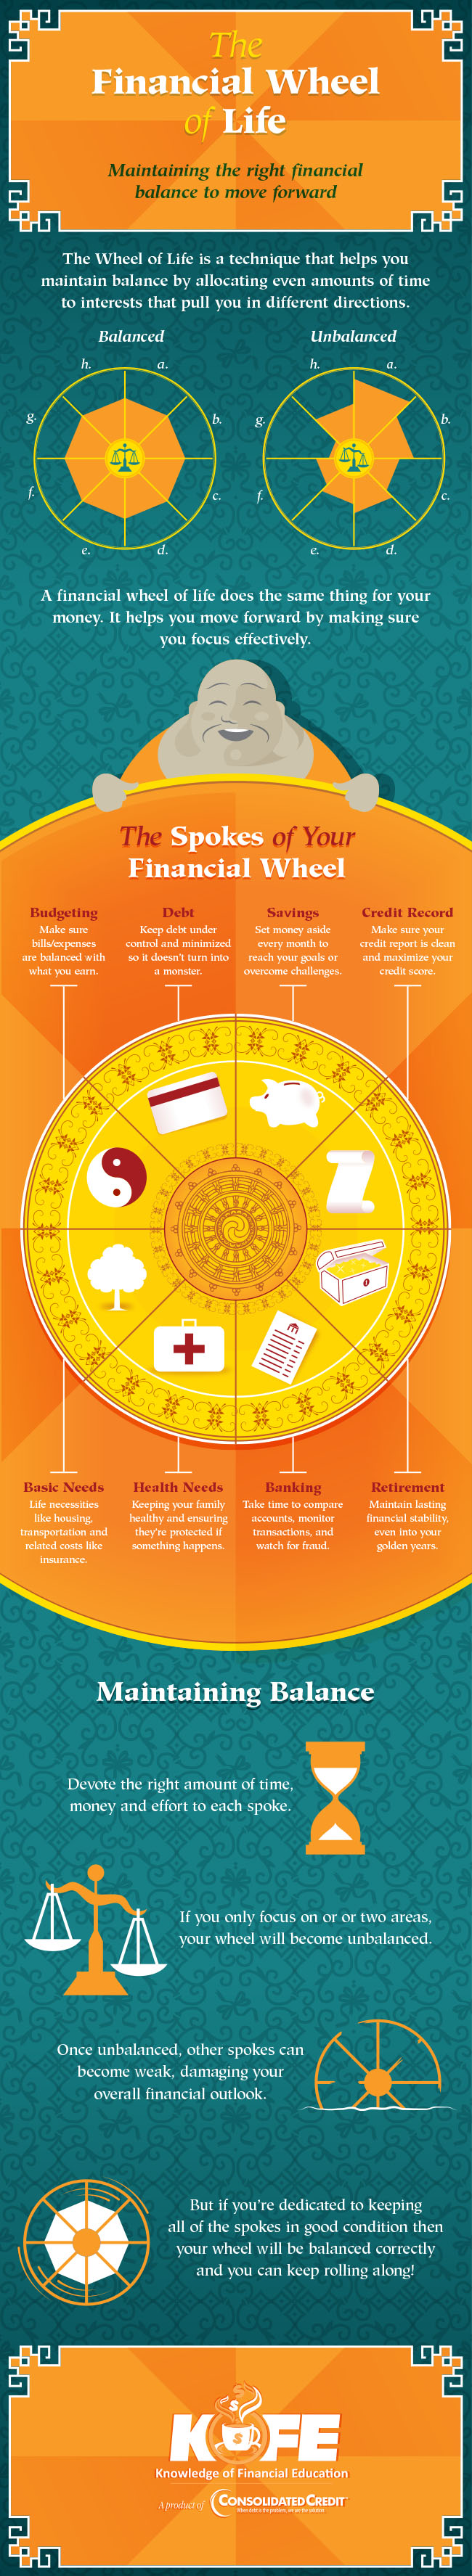 The Financial Wheel of Life infographic